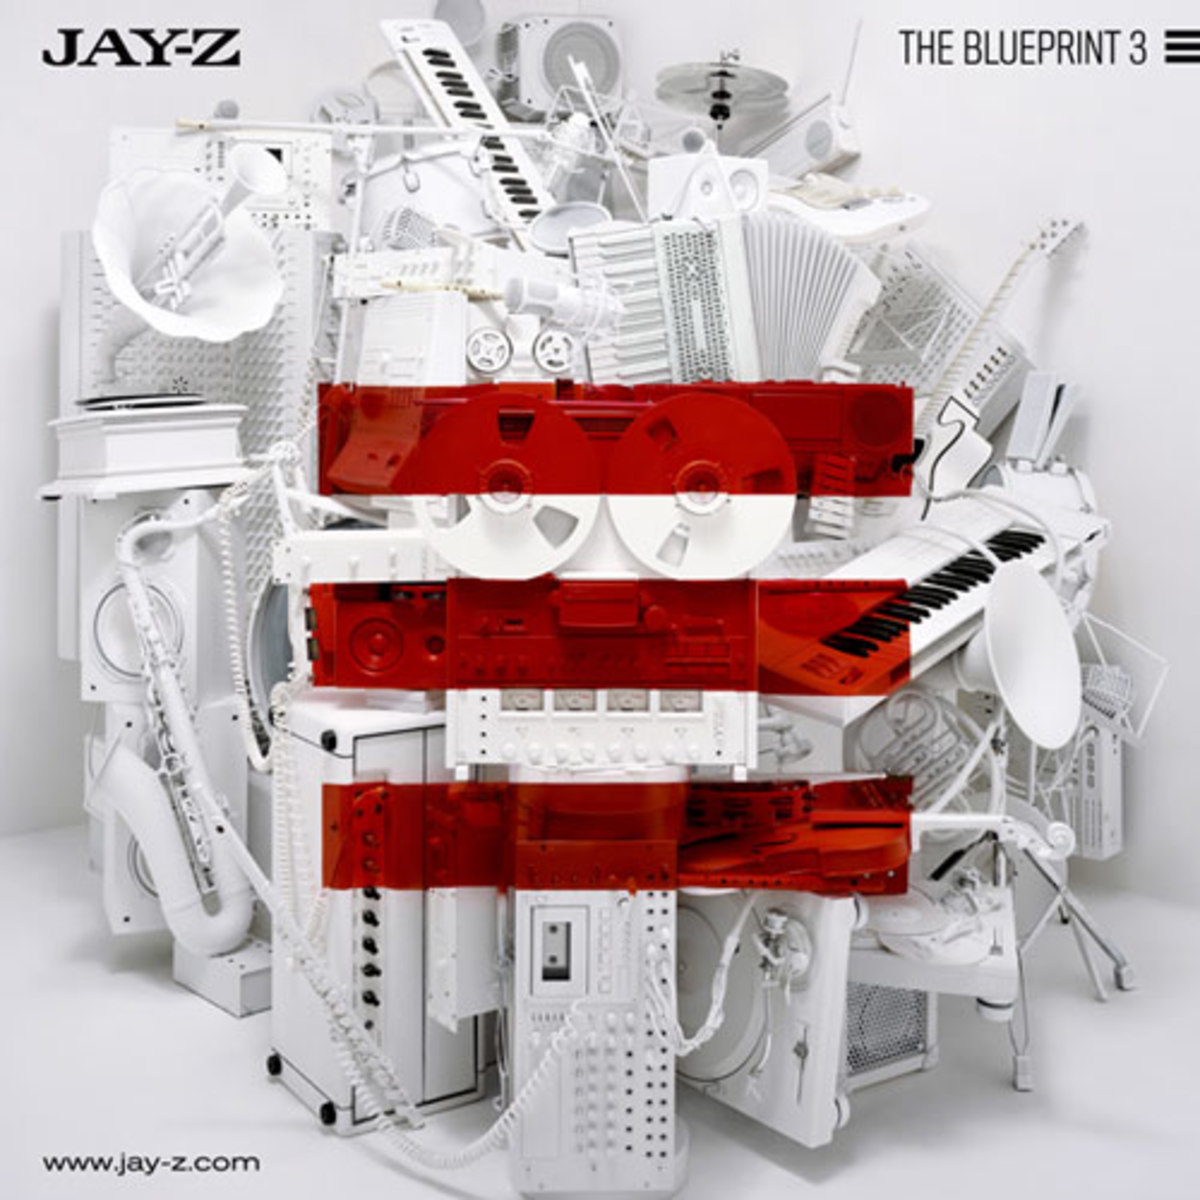 jay-z-the-blueprint-3-cover